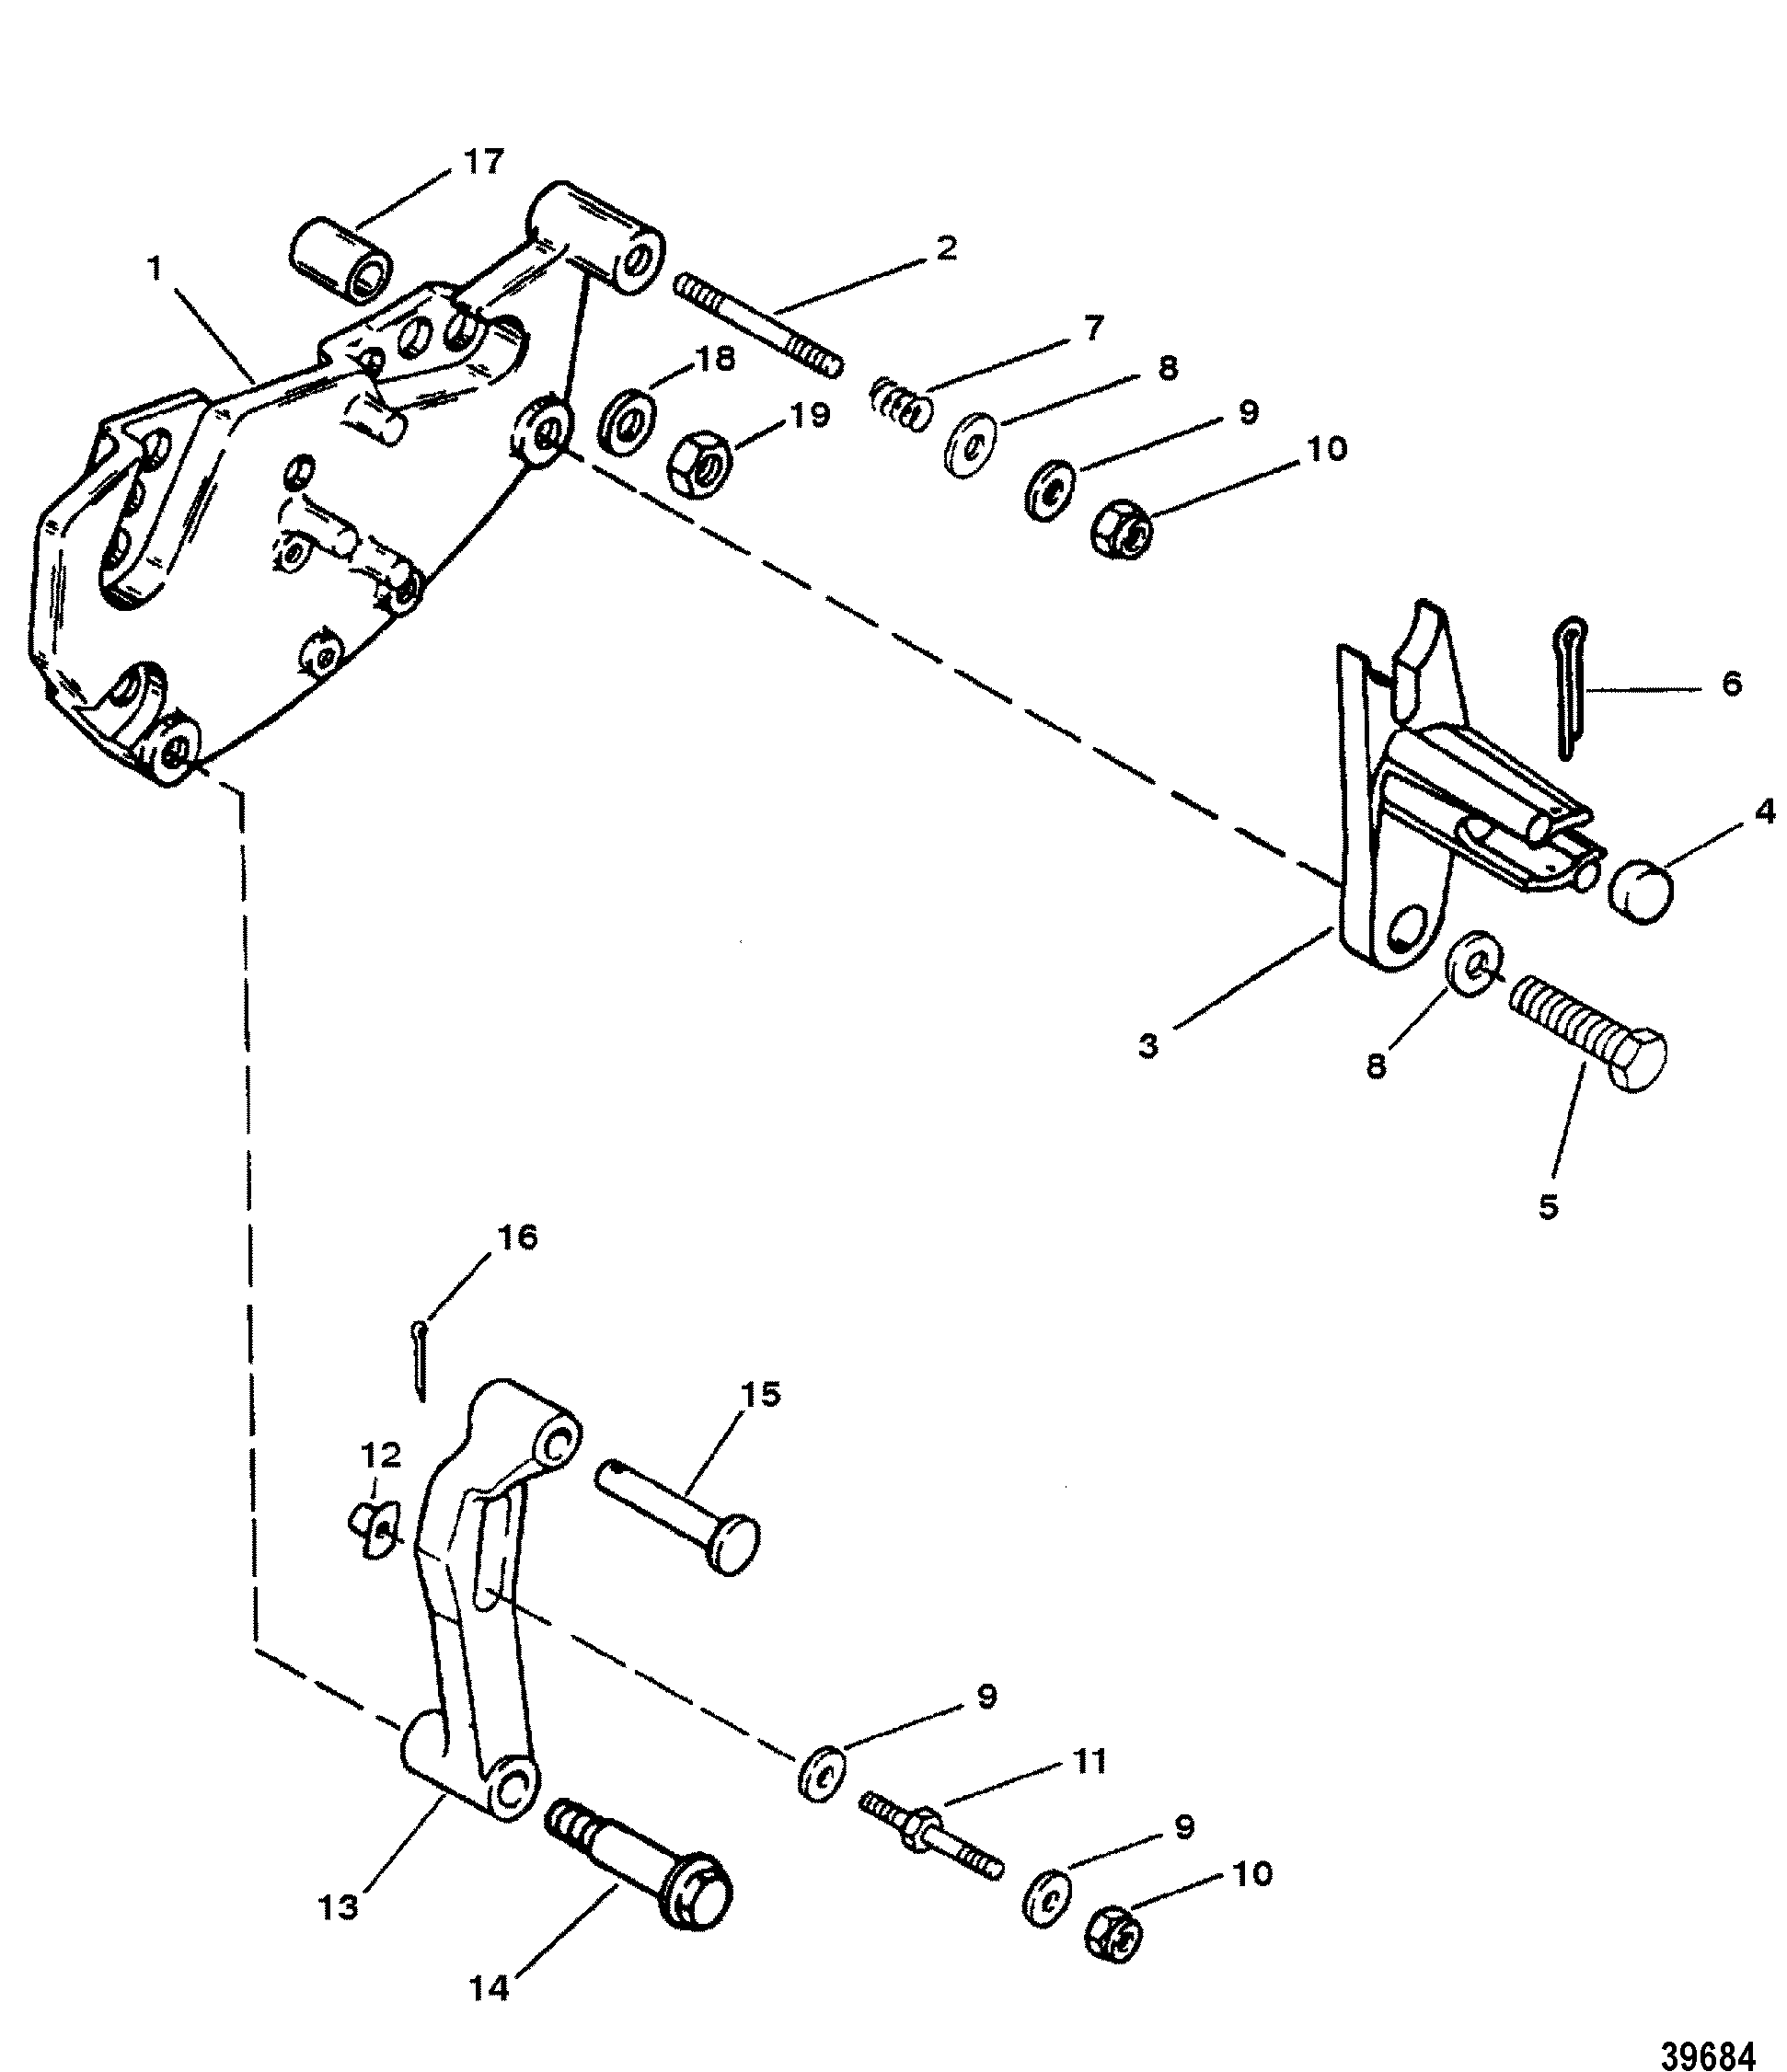 1993 mercury capri exhaust diagram